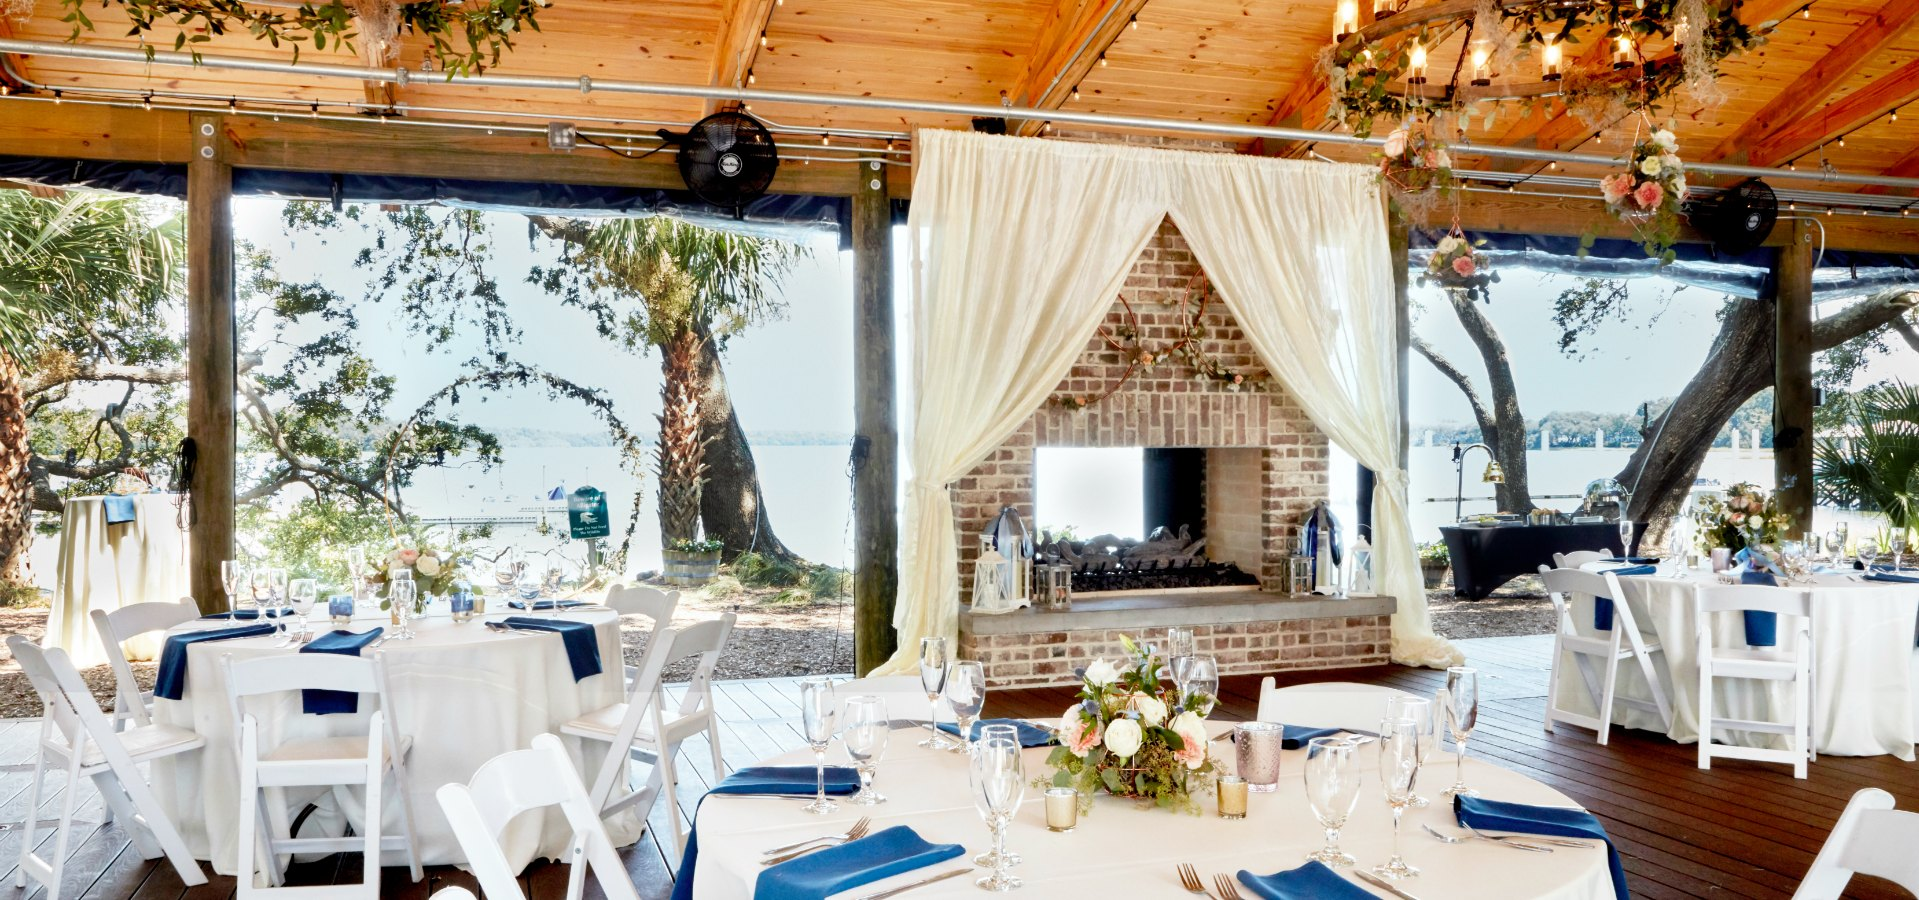 Wedding locations on hilton head island